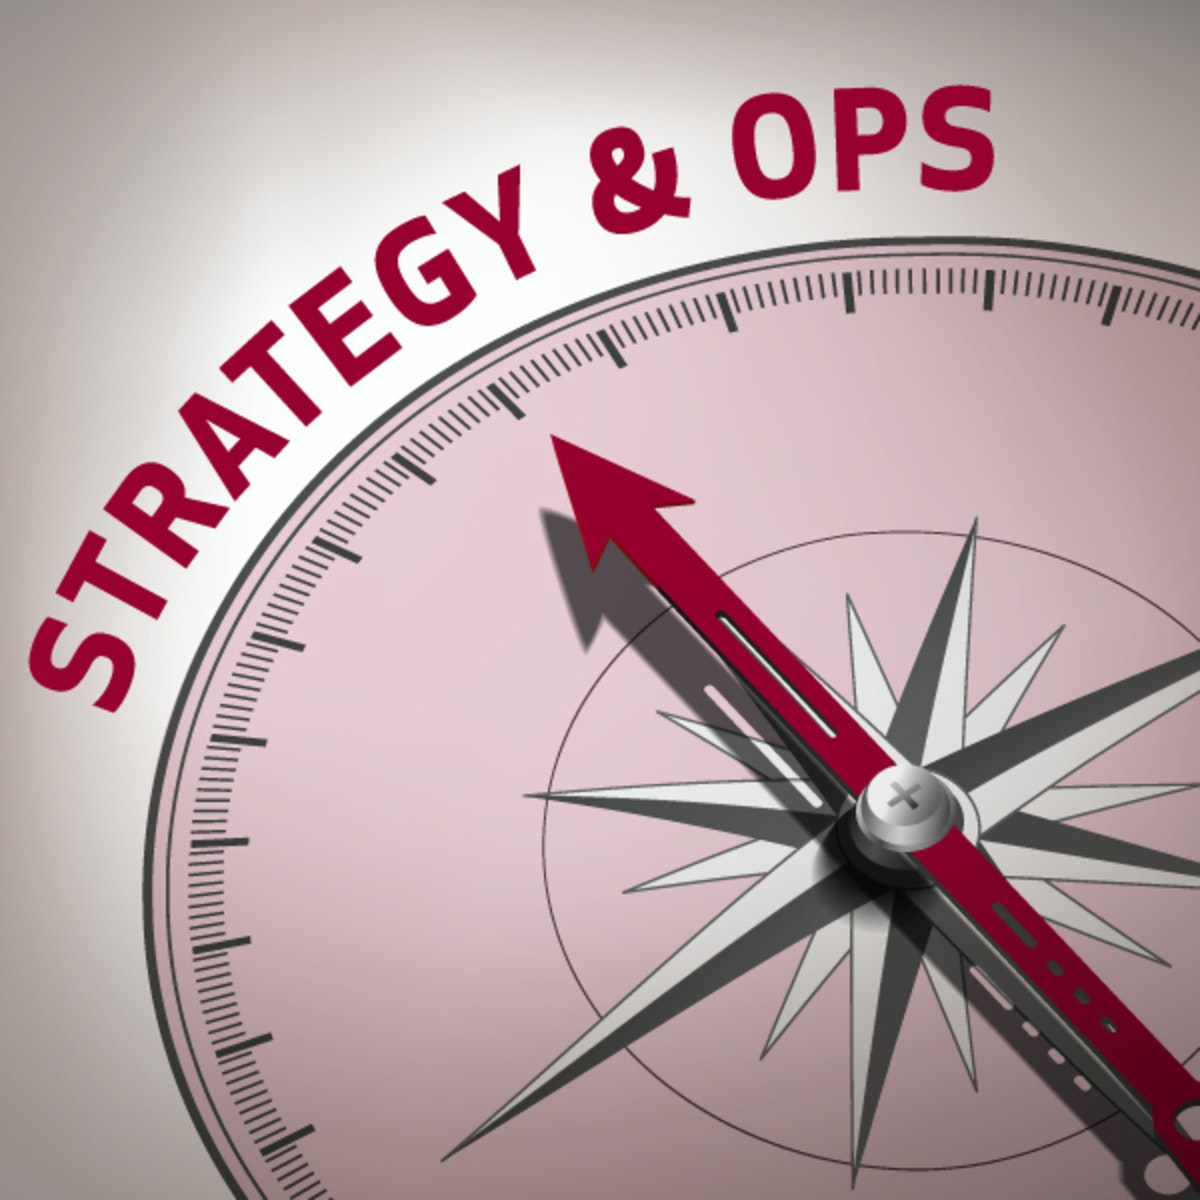 Operations Management and Strategy Toolkit for Managers